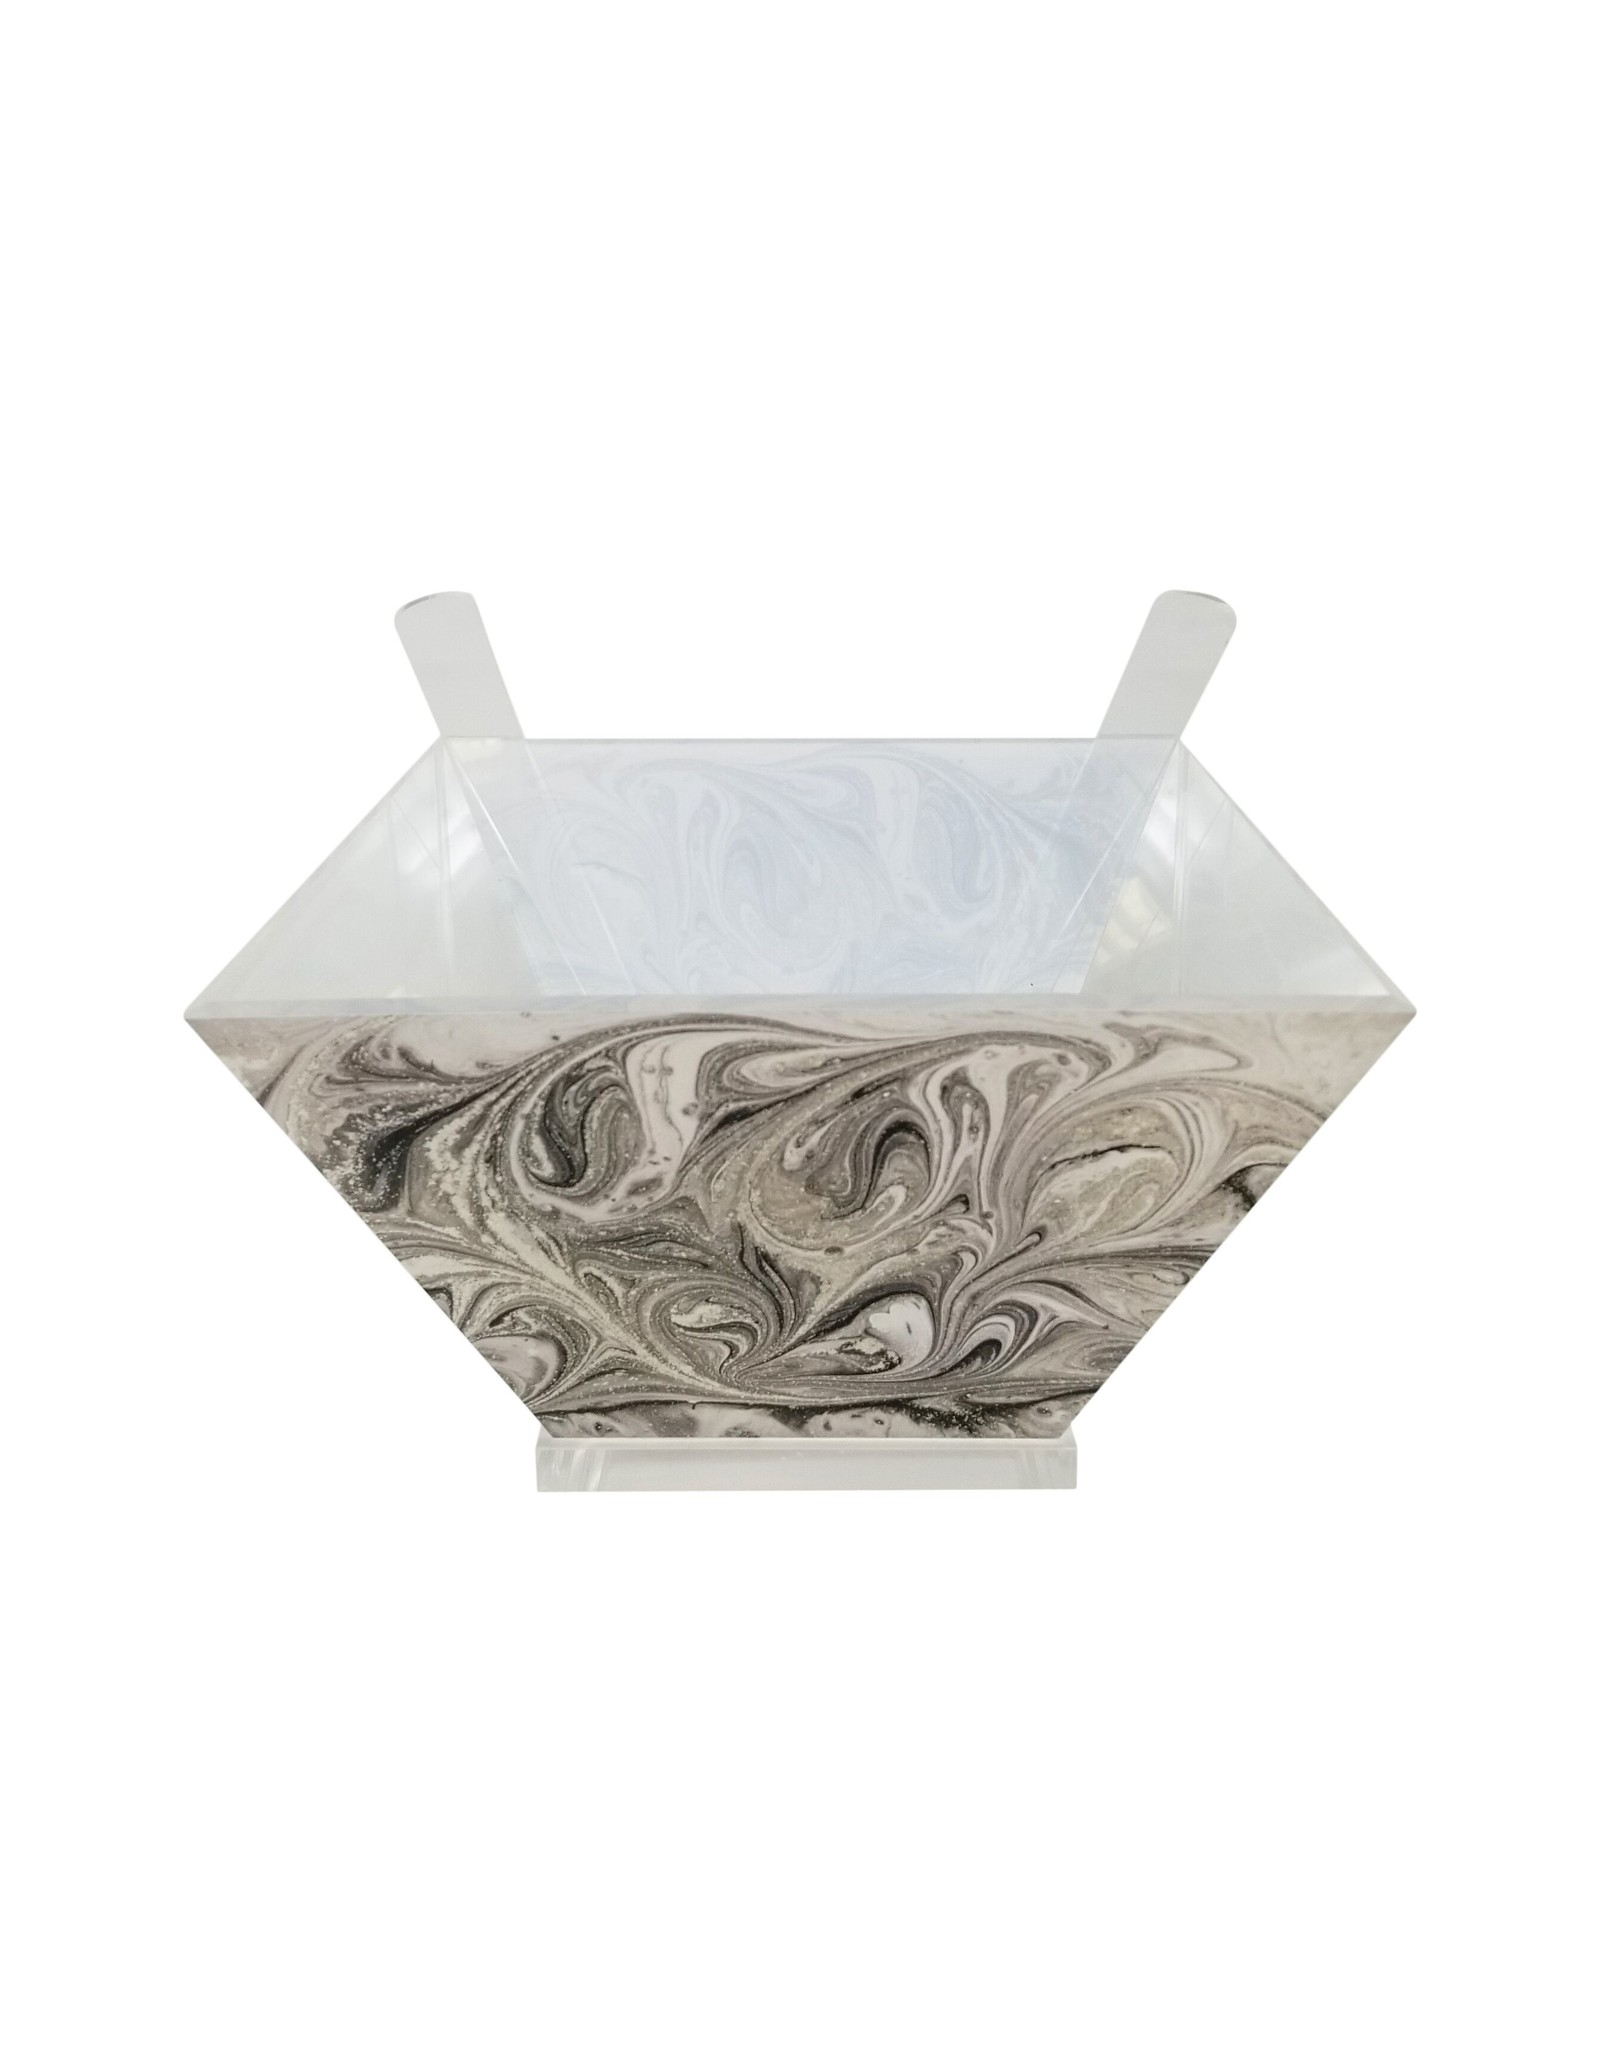 Presented Touch Acrylic Salad Bowl with Servers Grey Marble